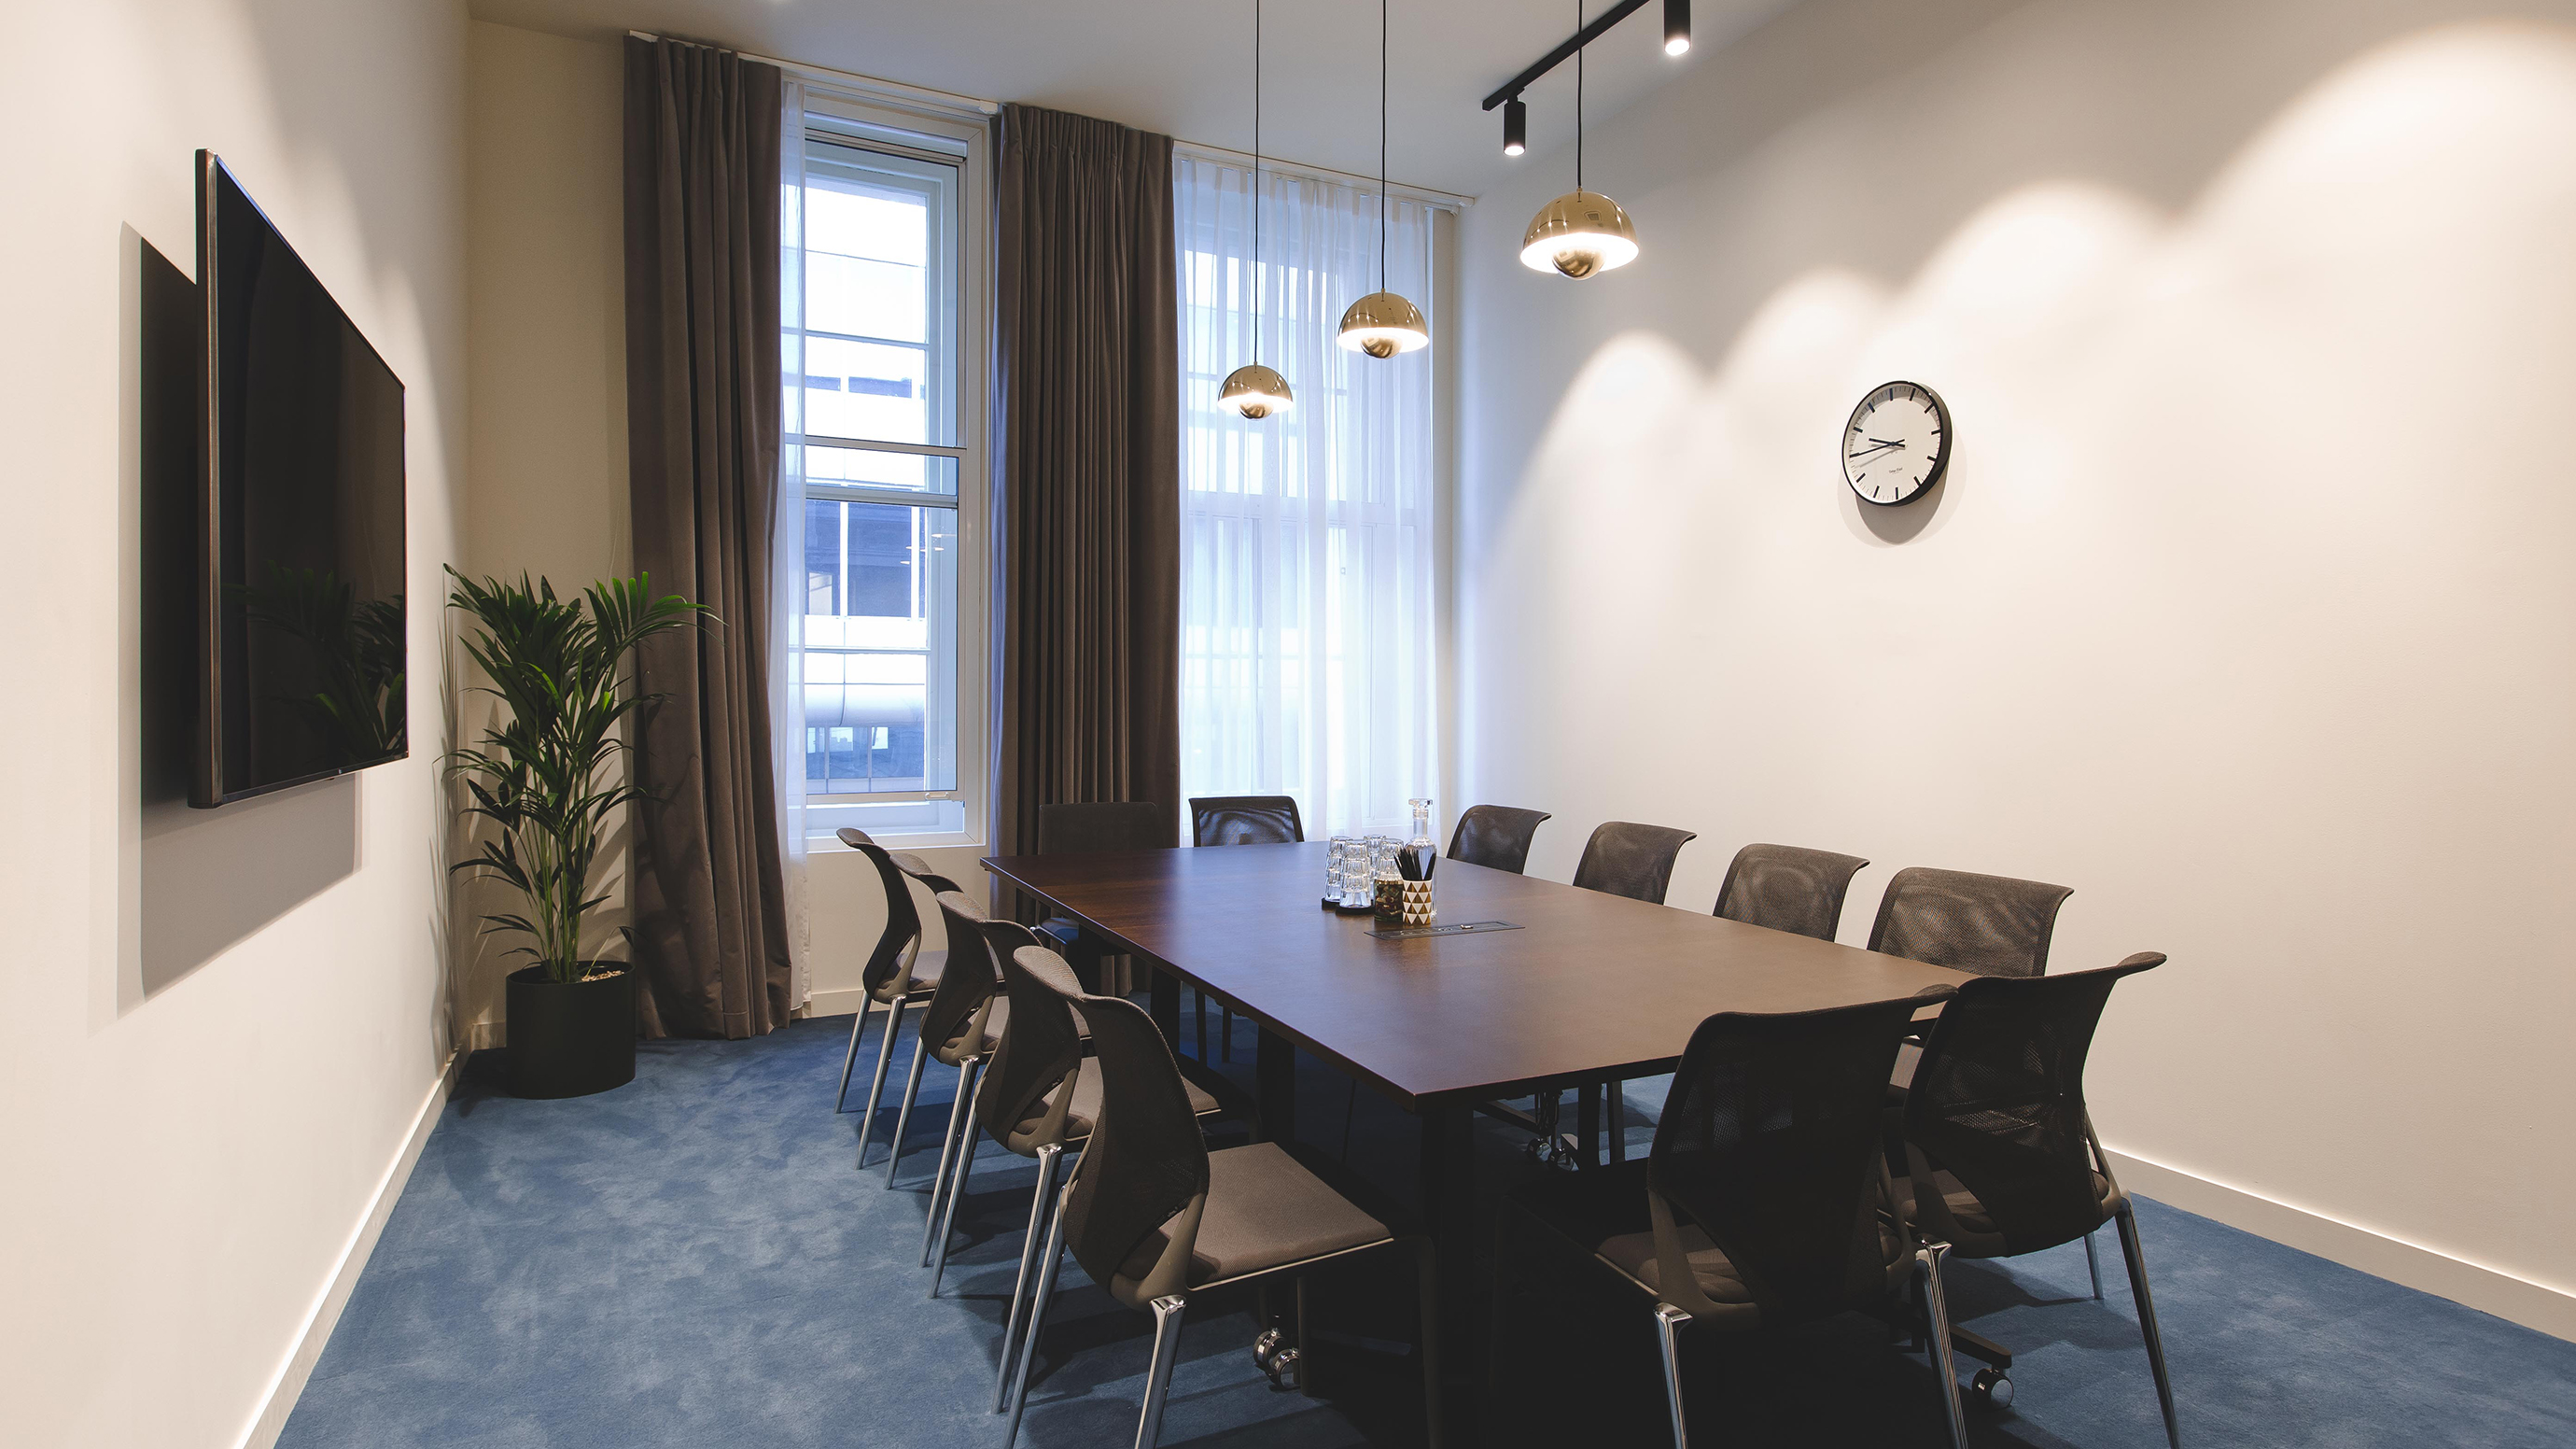 Medium meeting room with dark wooden table and chairs and tv screen at TOG building Belle House London